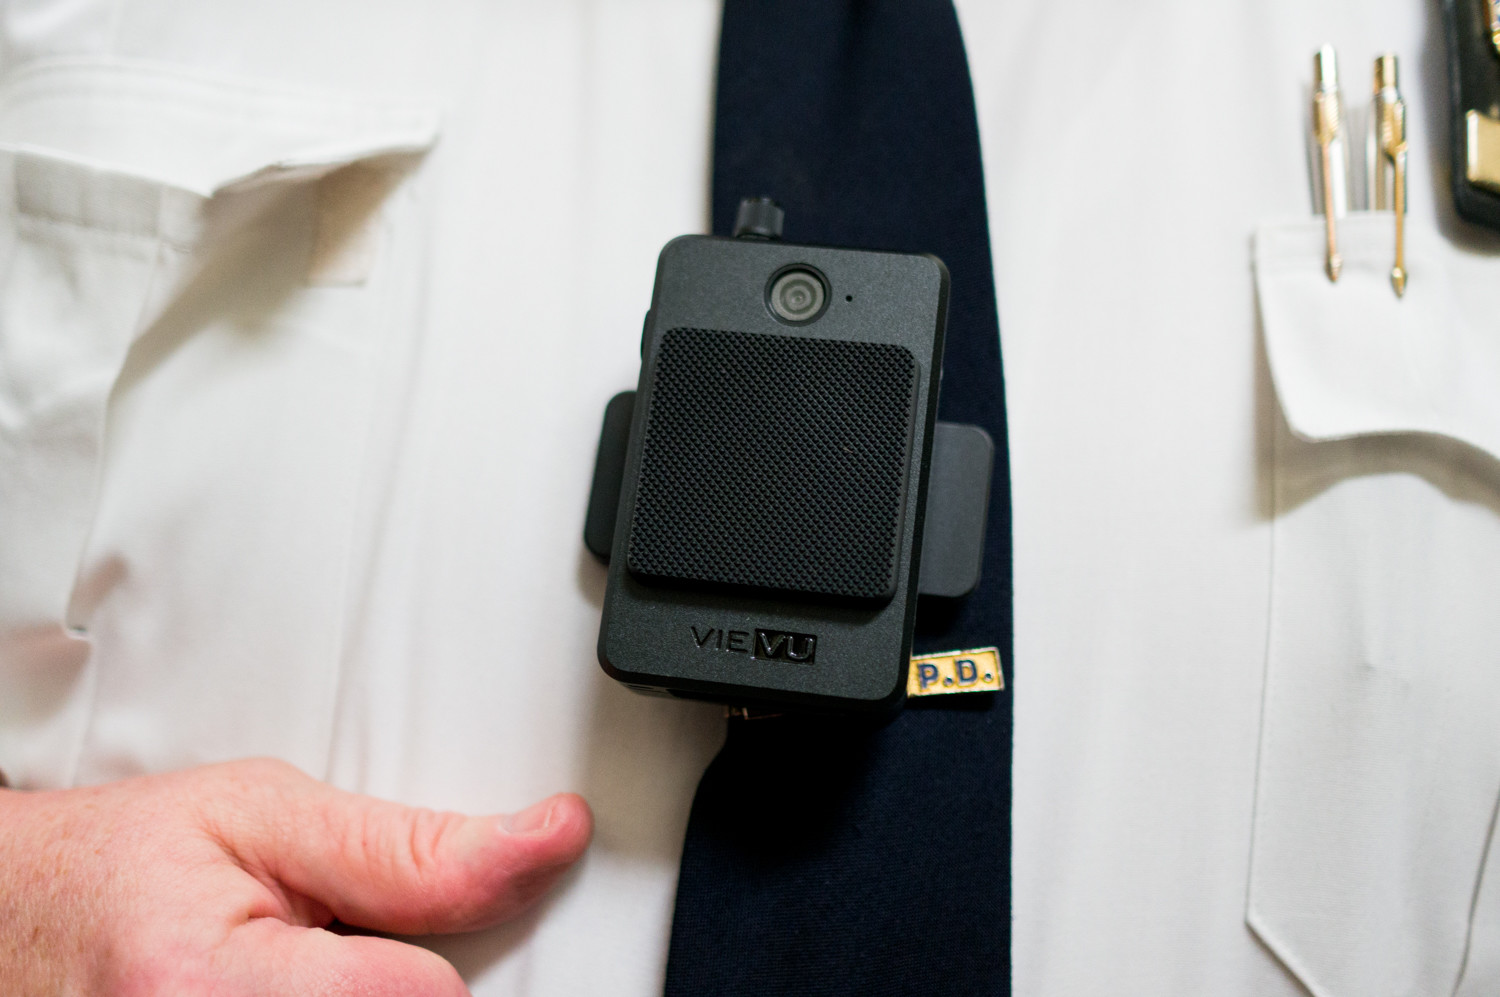 Deputy Inspector Terence O'Toole of the 50th Precinct demonstrates wearing a body camera, which patrol officers under his command began using March 20. Frederick Davie, acting chair of the city's Civilian Complaint Review Board, has stressed the importance of video evidence to the board's investigations.